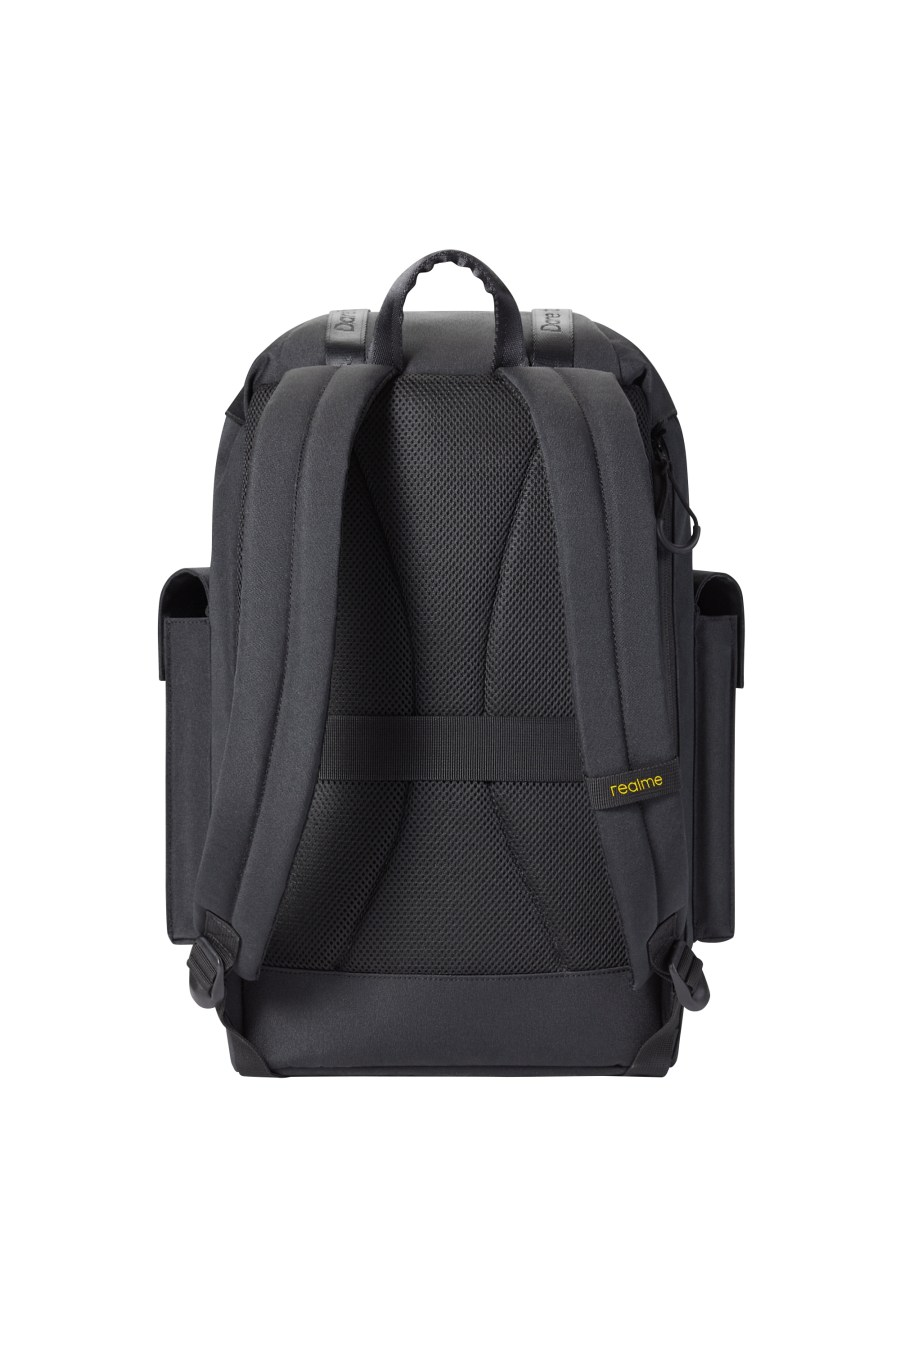 realme Adventure Backpack 3